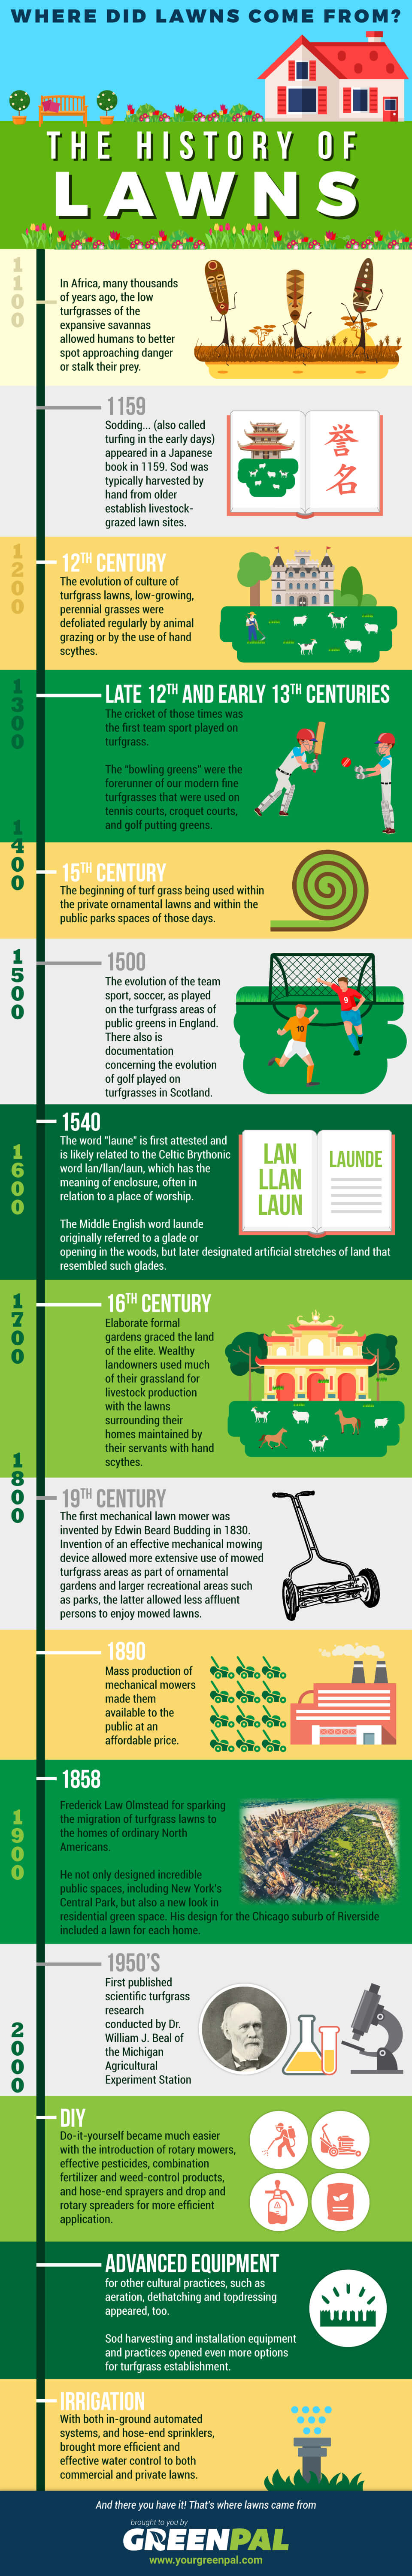 History of Lawns infographic